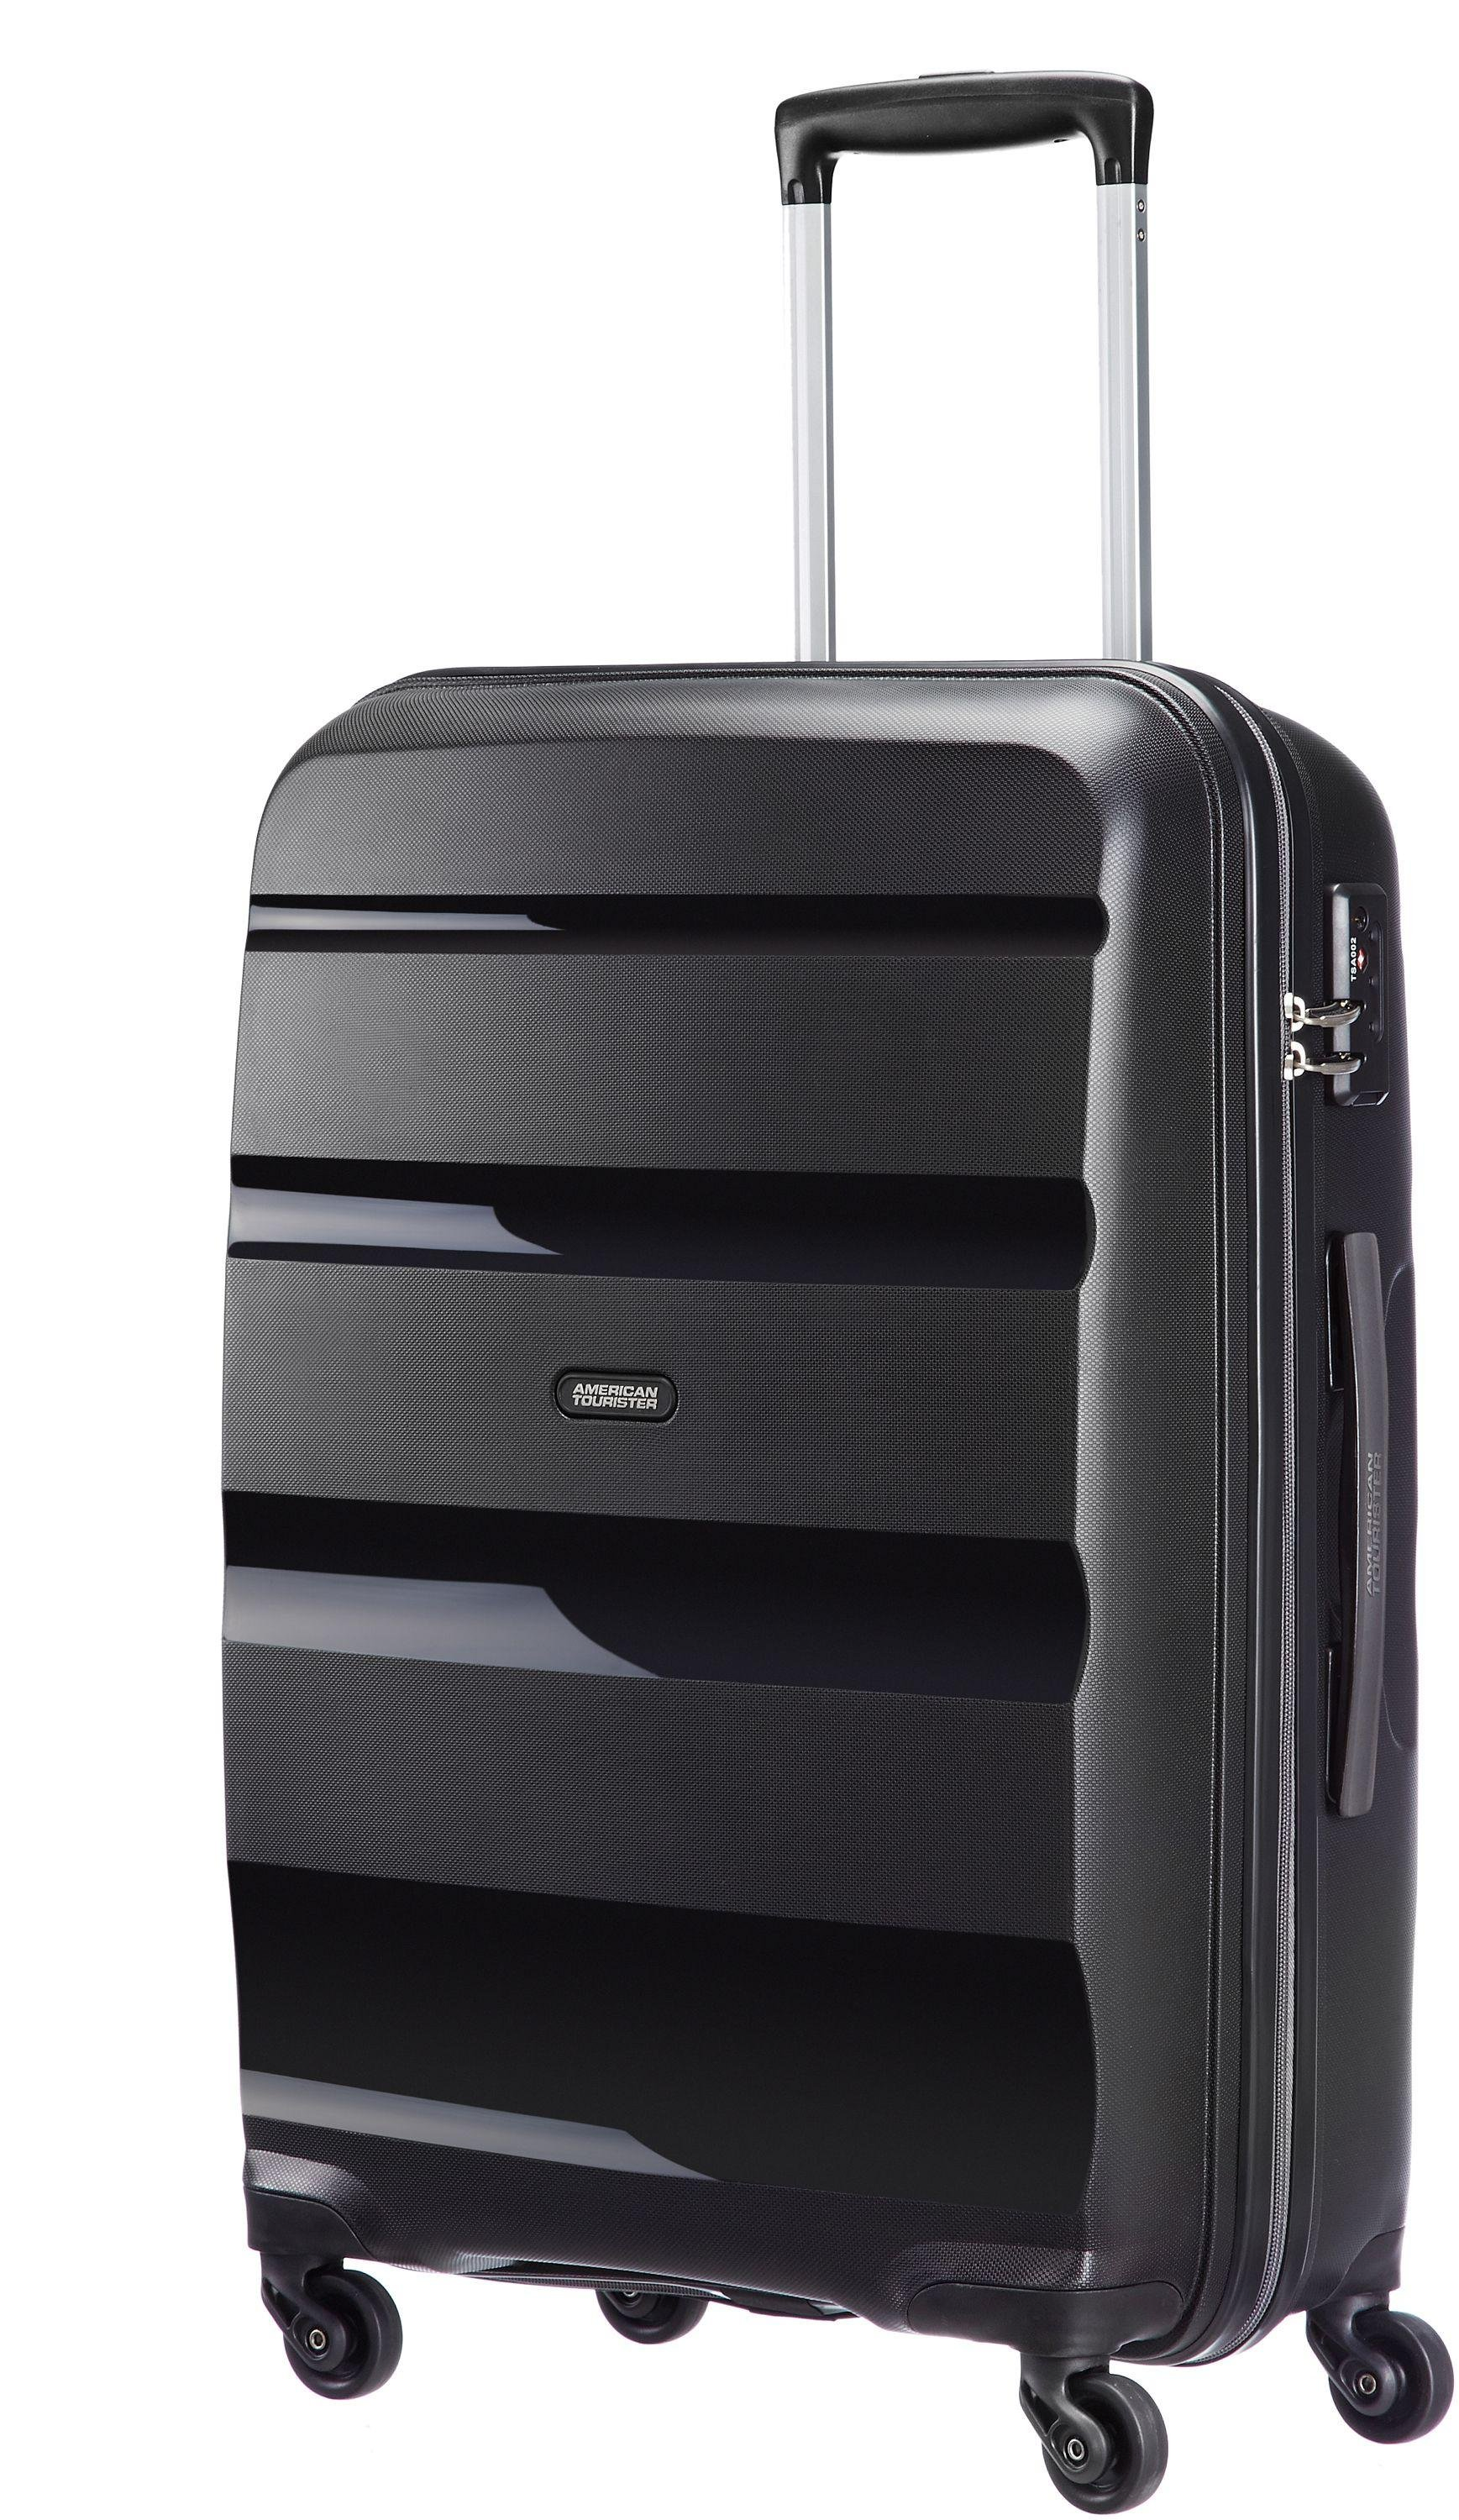 Image of American Tourister - Bon Air Spinner Medium Suitcase - Black